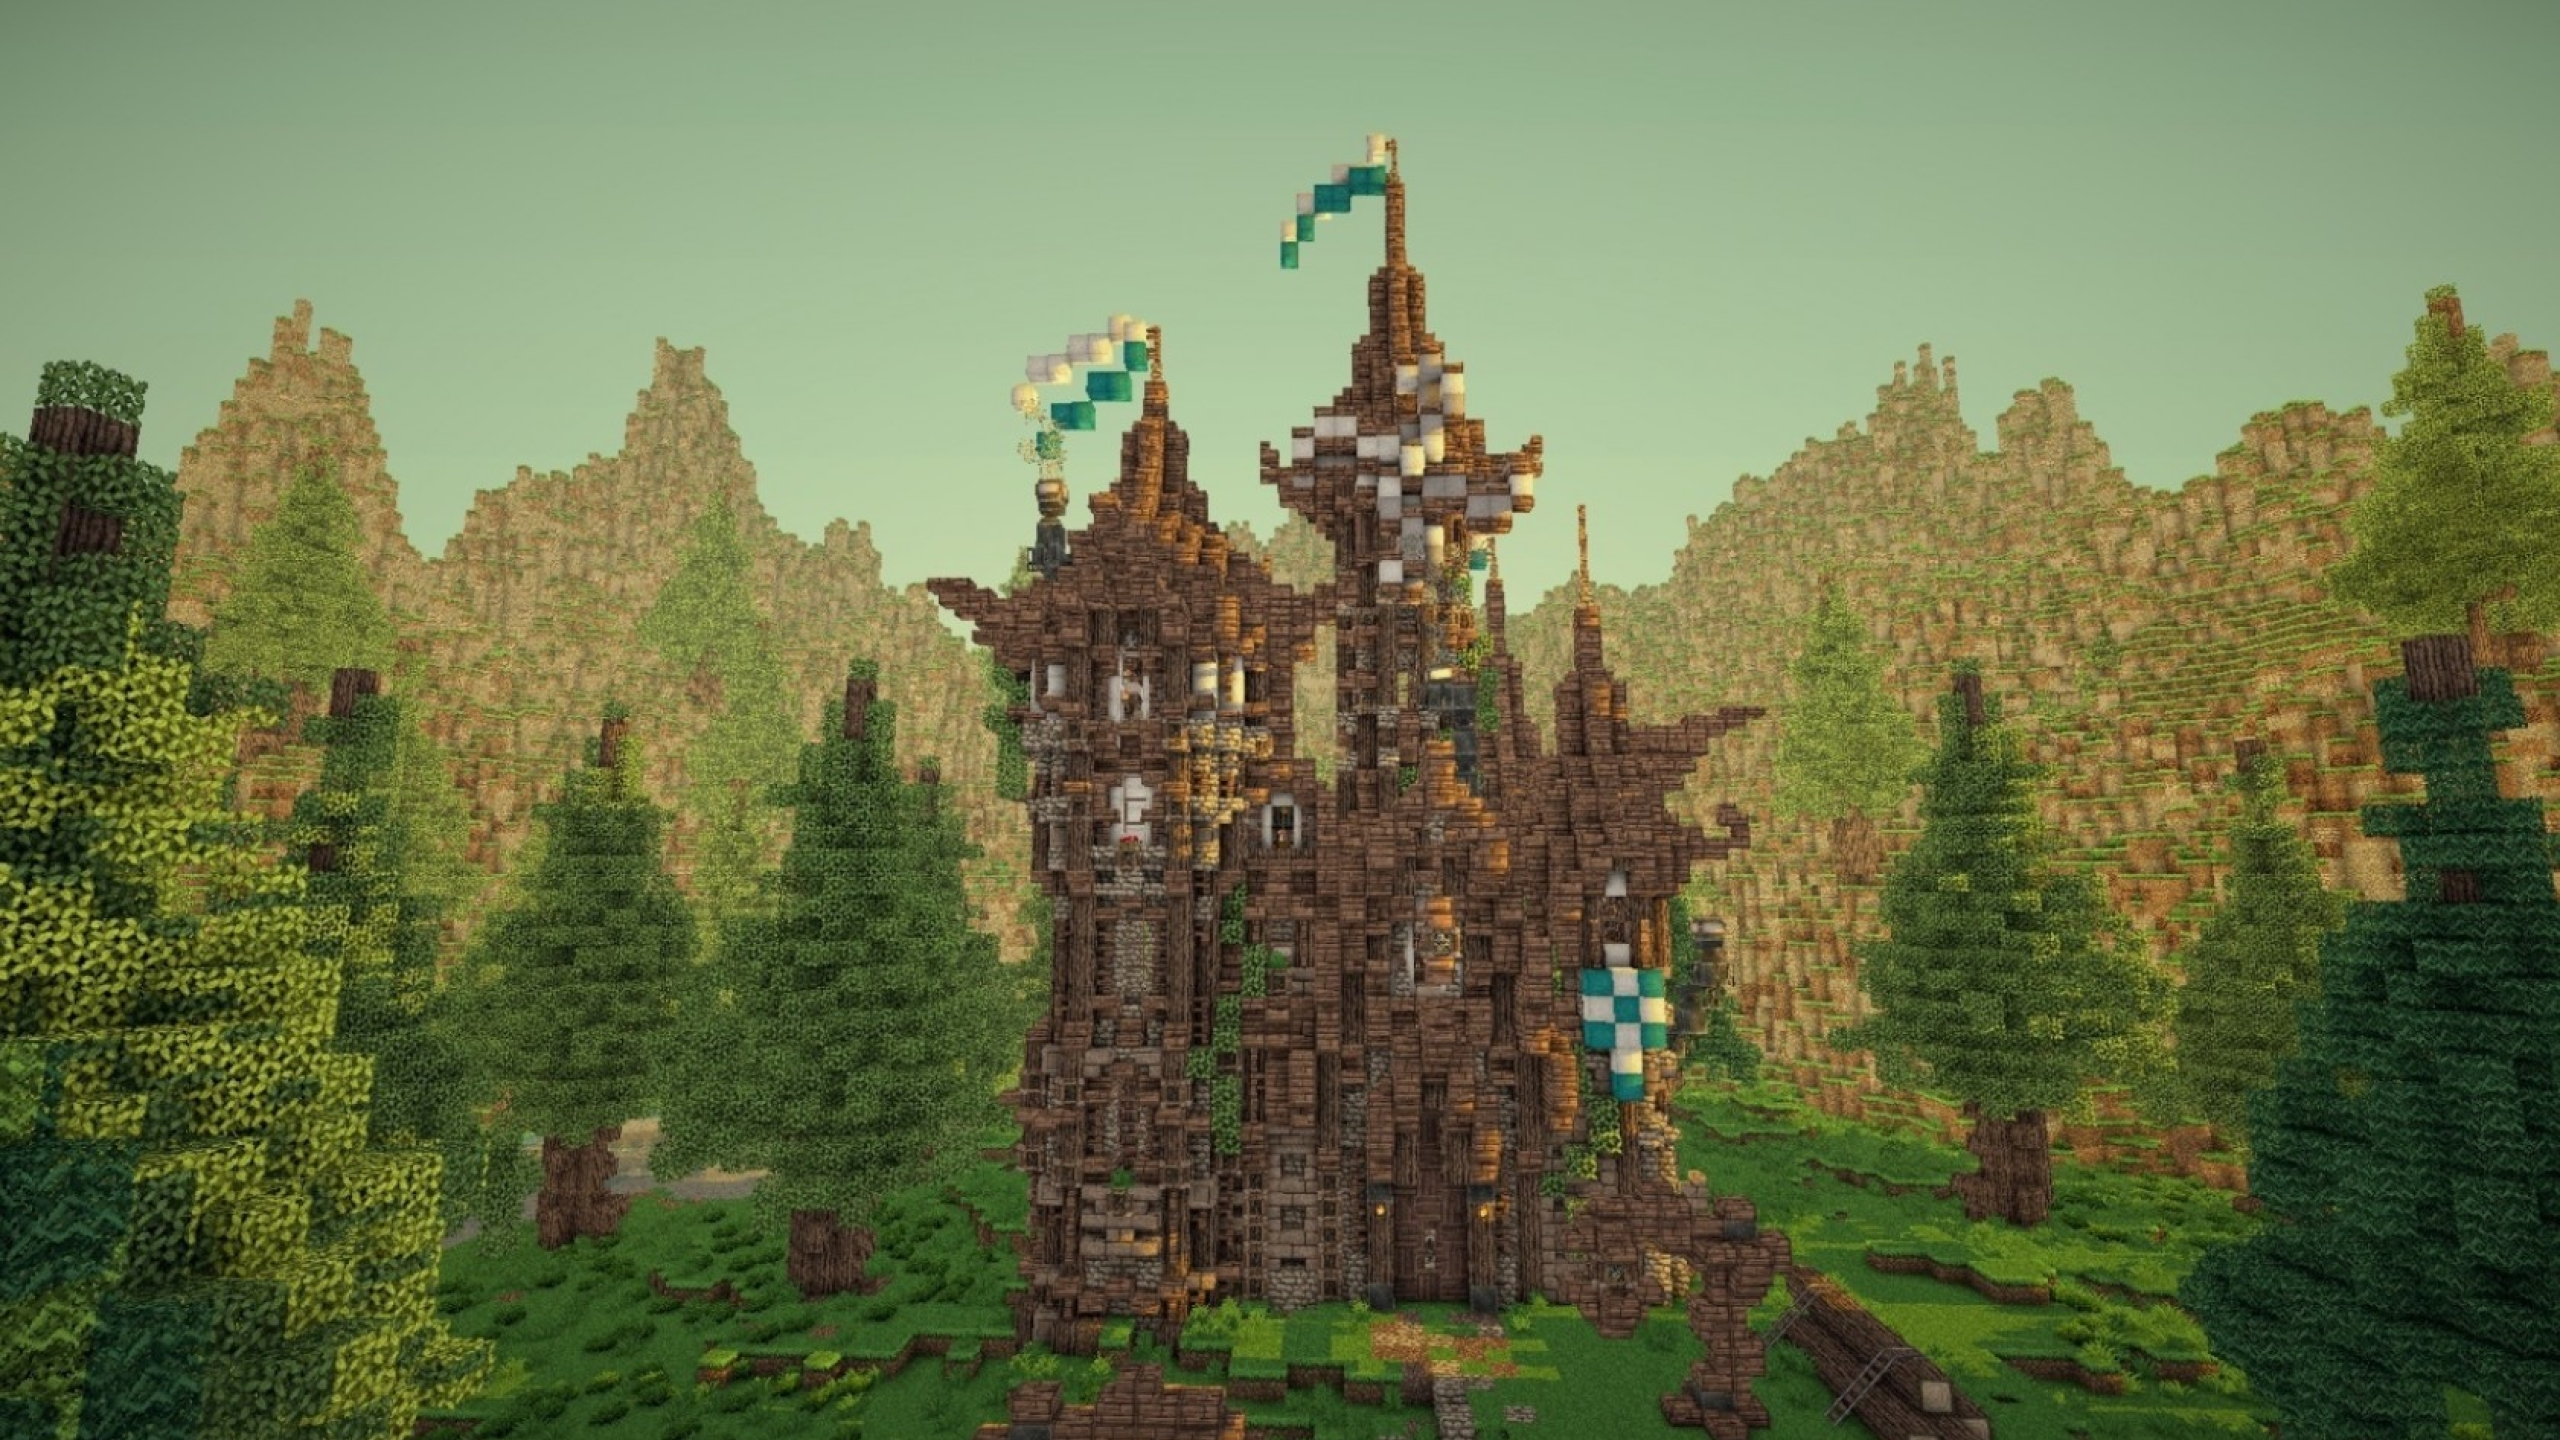 2560x1440 Minecraft Game Mojang Ab 1440p Resolution